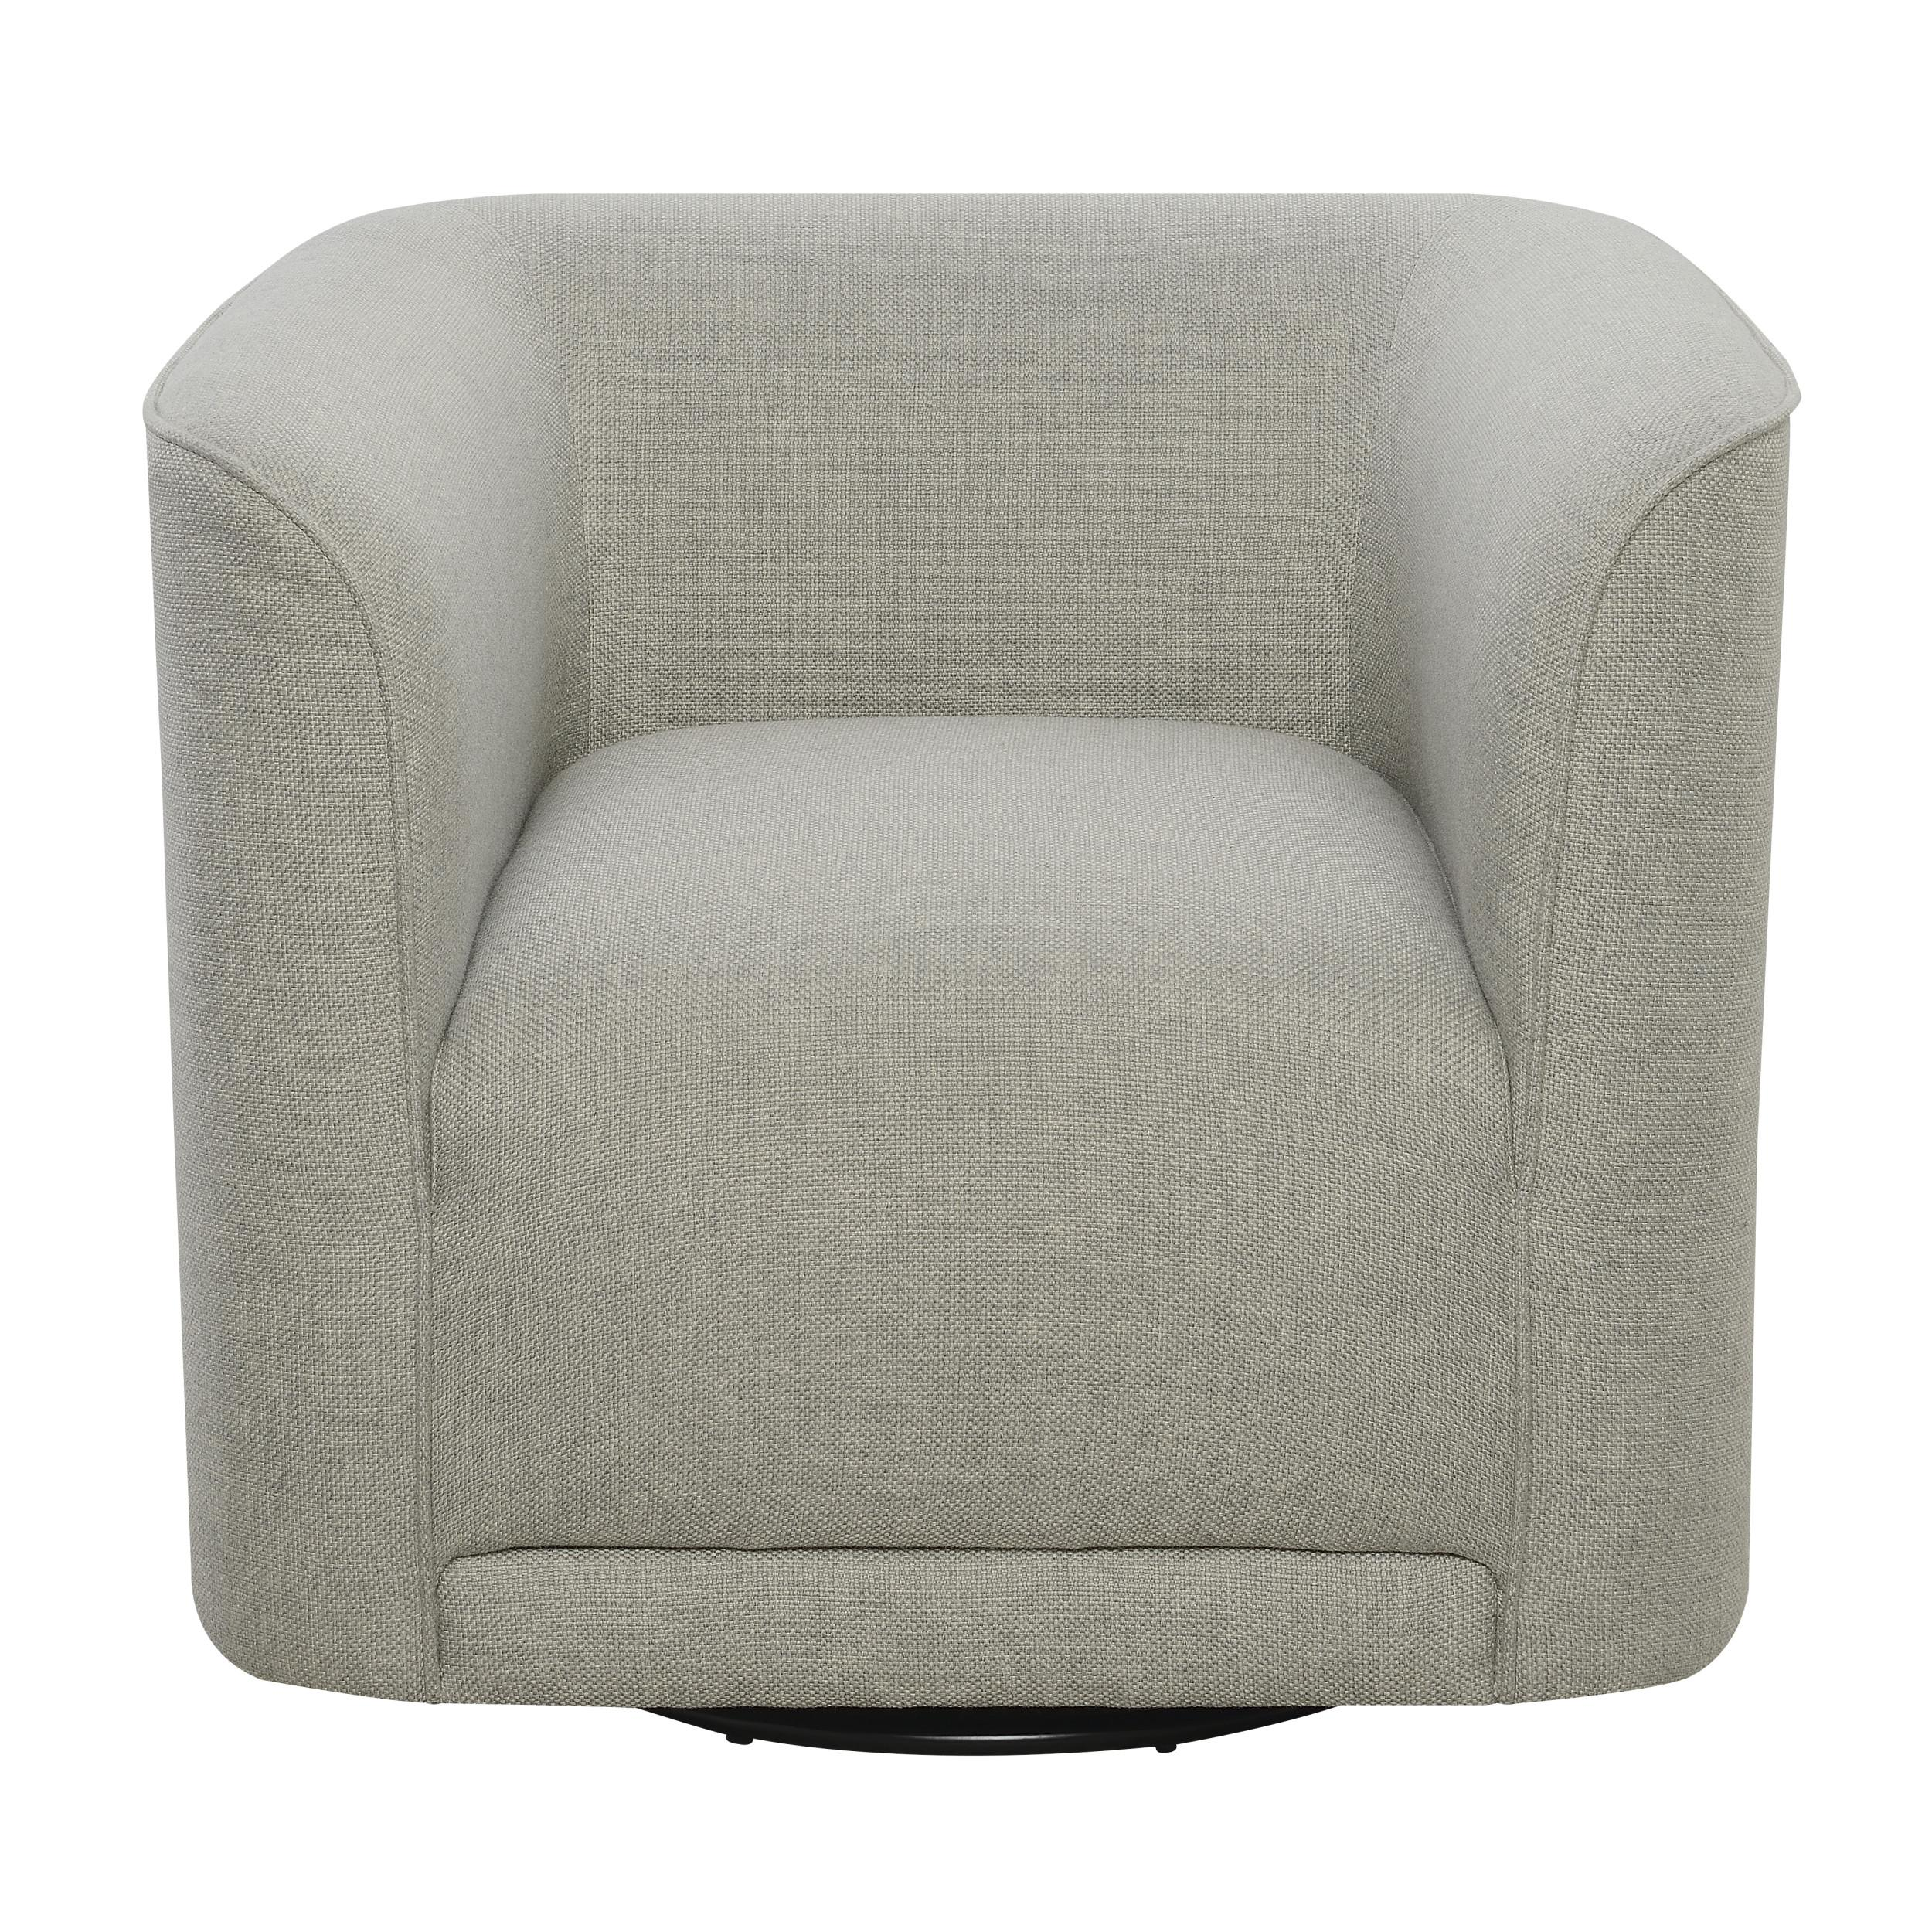 Super Emerald Home Whirlaway Parchment Gray Fabric Accent Chair Andrewgaddart Wooden Chair Designs For Living Room Andrewgaddartcom